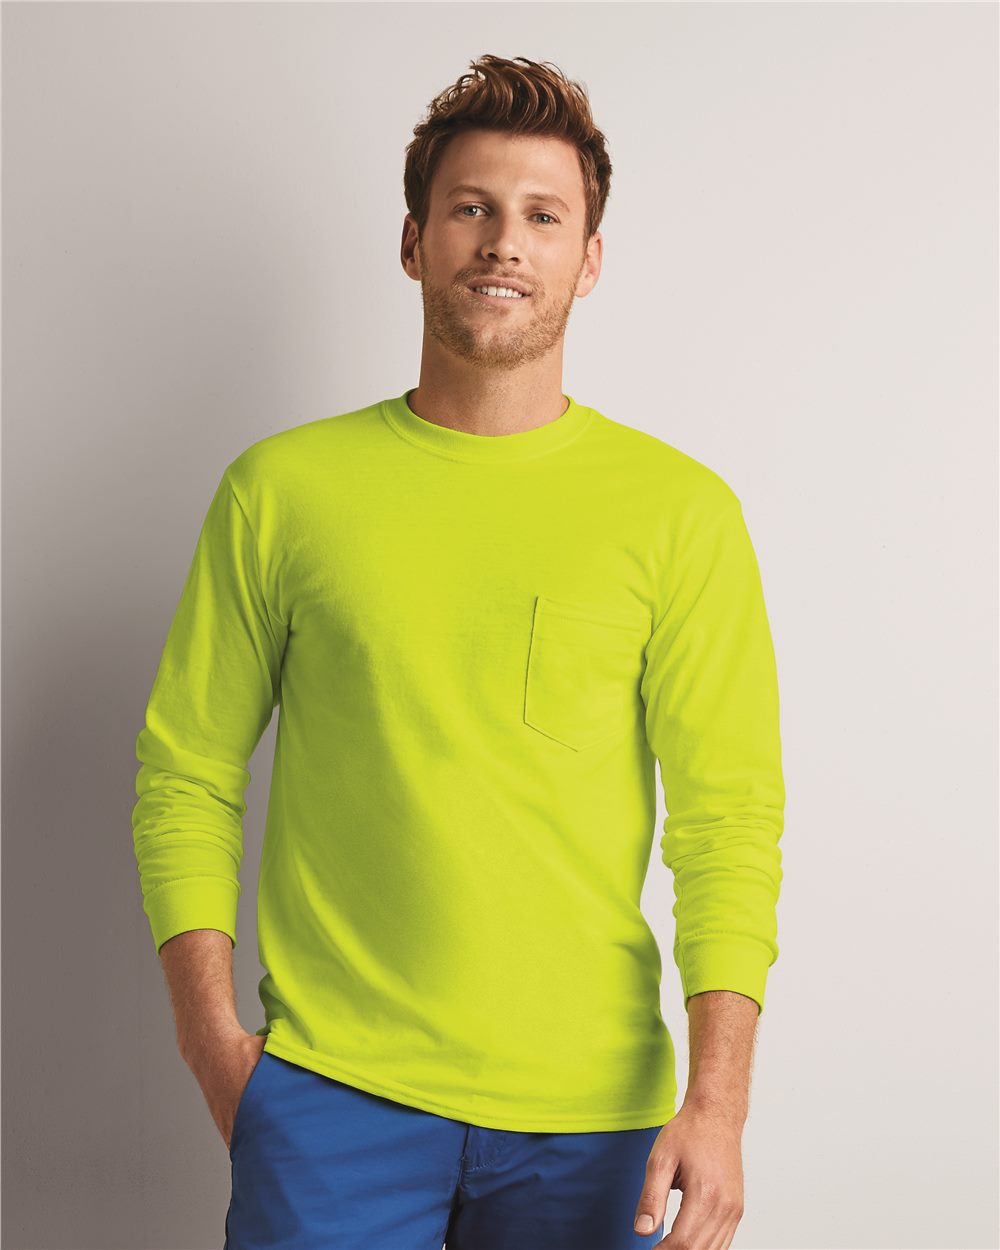 Gildan 2410 Ultra Cotton Long Sleeve T-Shirt with a Pocket